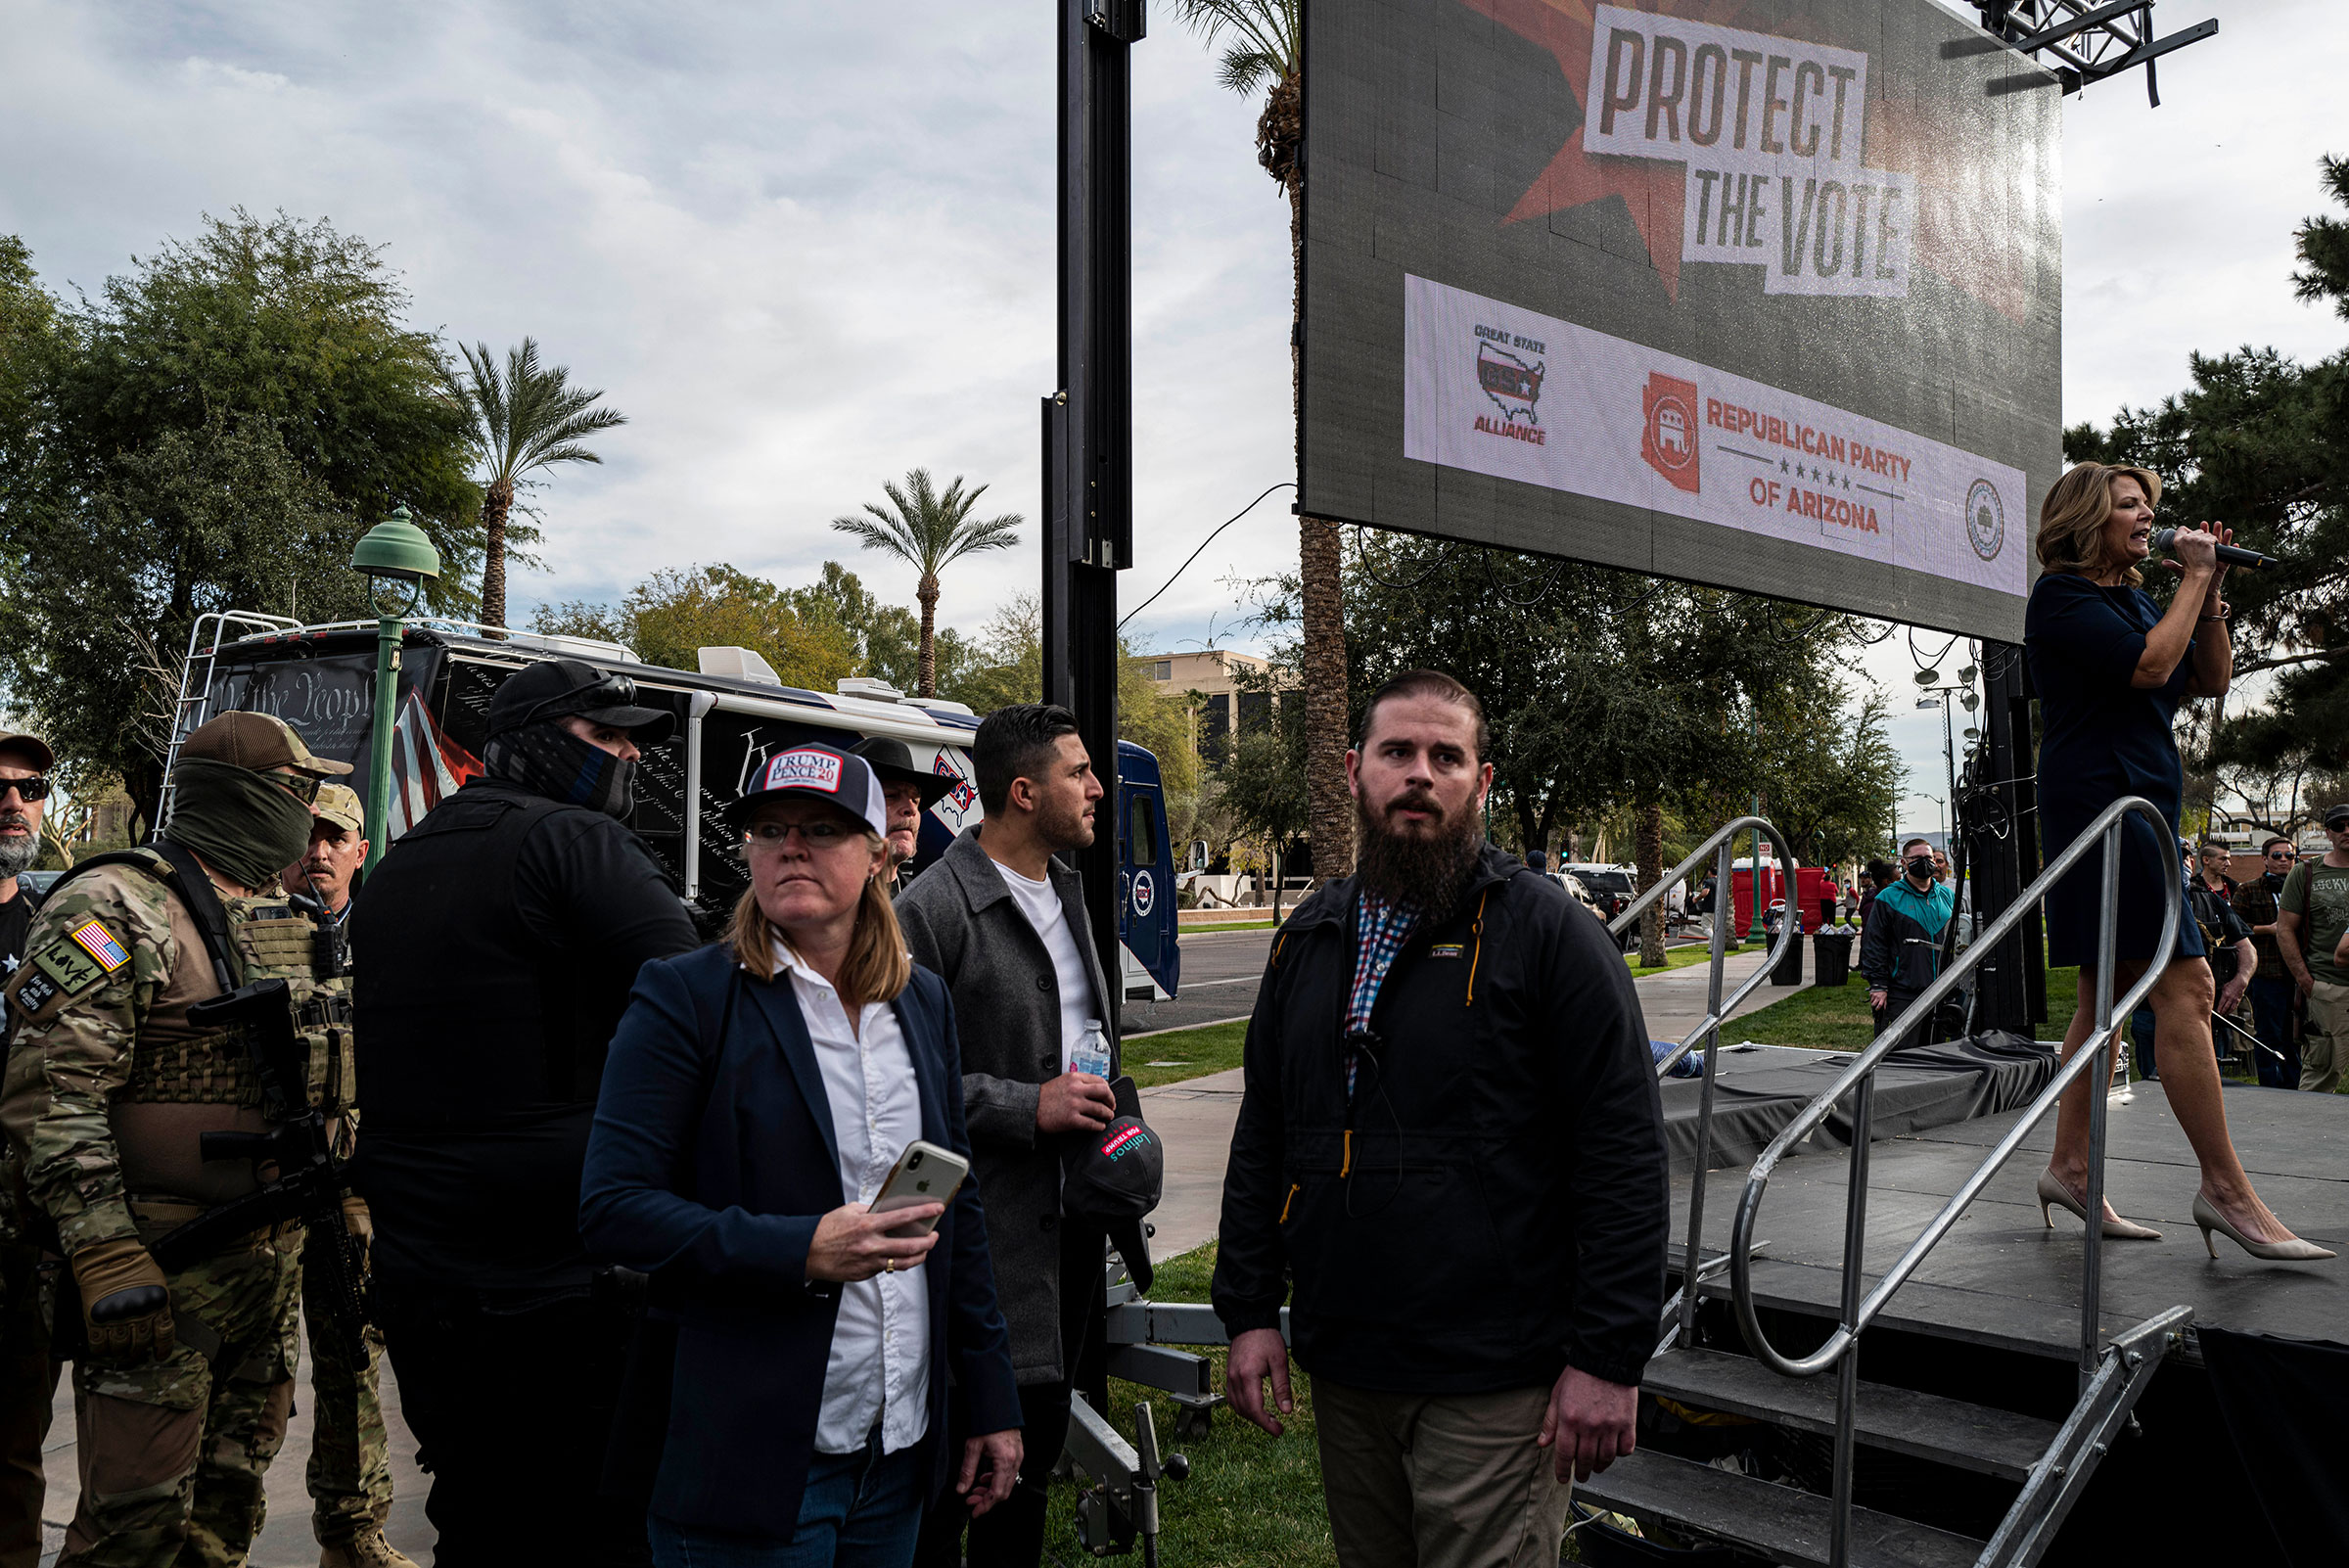 Kelli Ward, chair of the Arizona Republican party, speaks onstage at a protest in Phoenix, on Jan. 6, 2021.